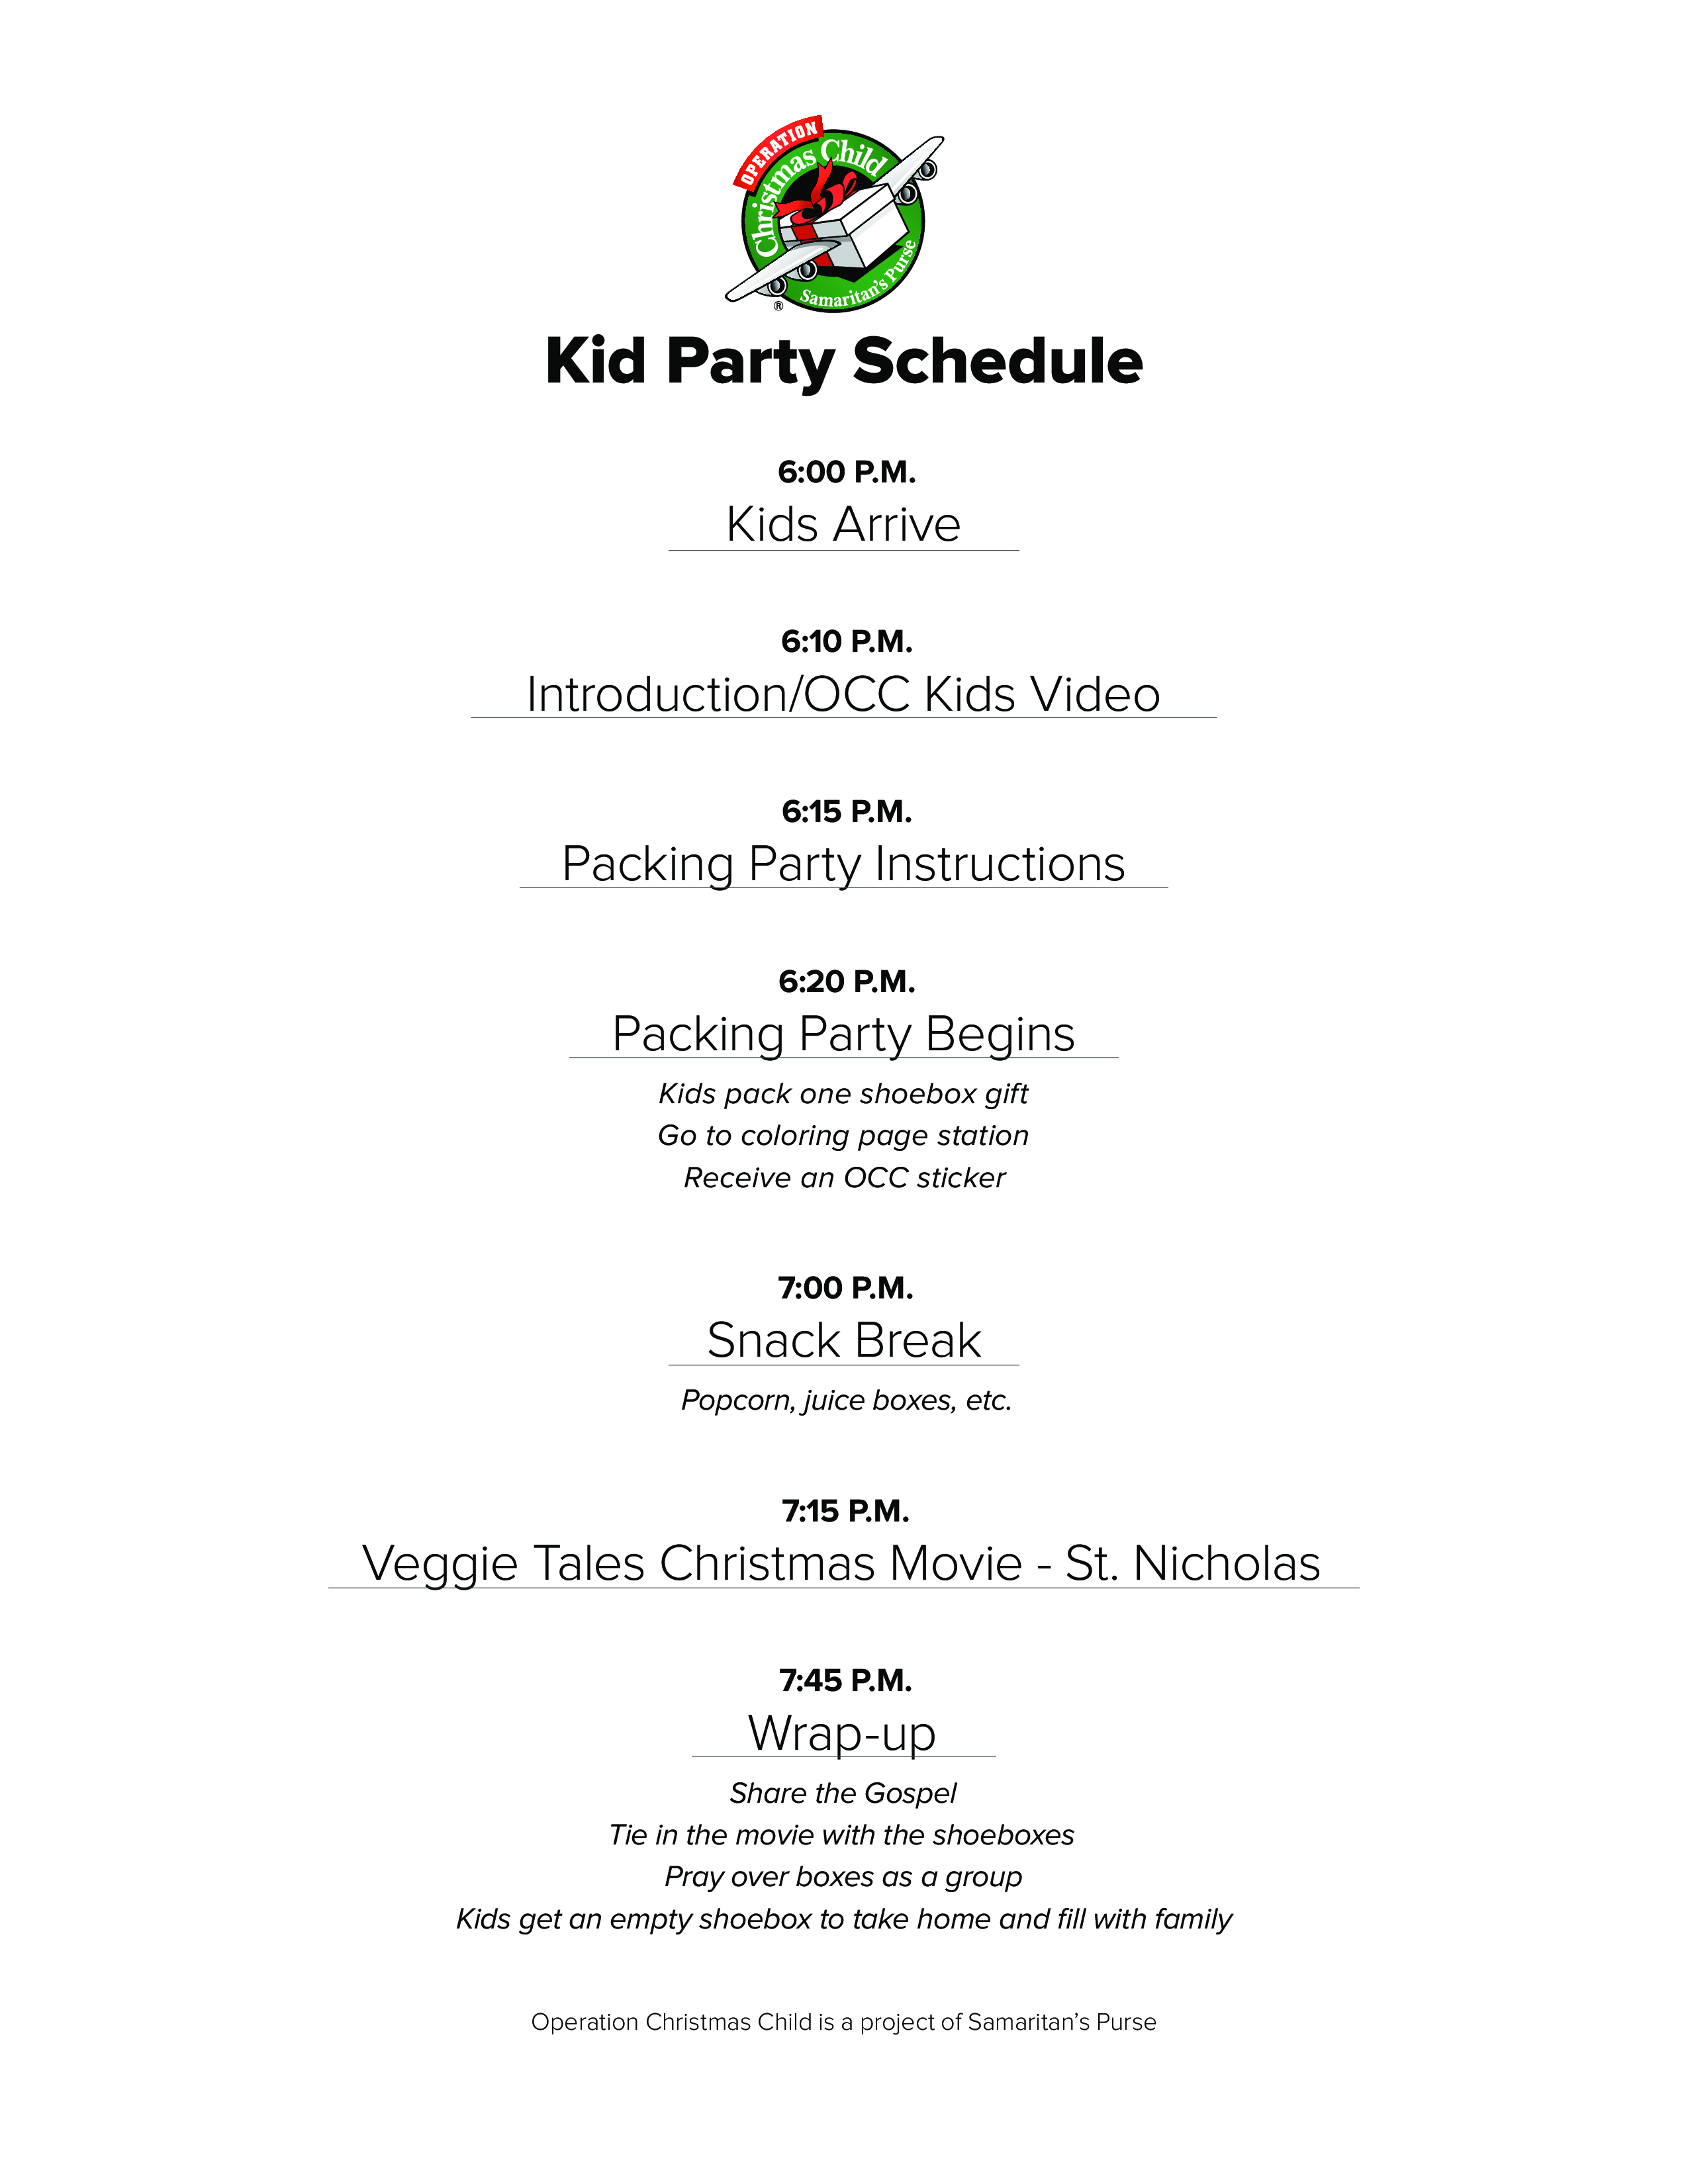 free kid party schedule templates at